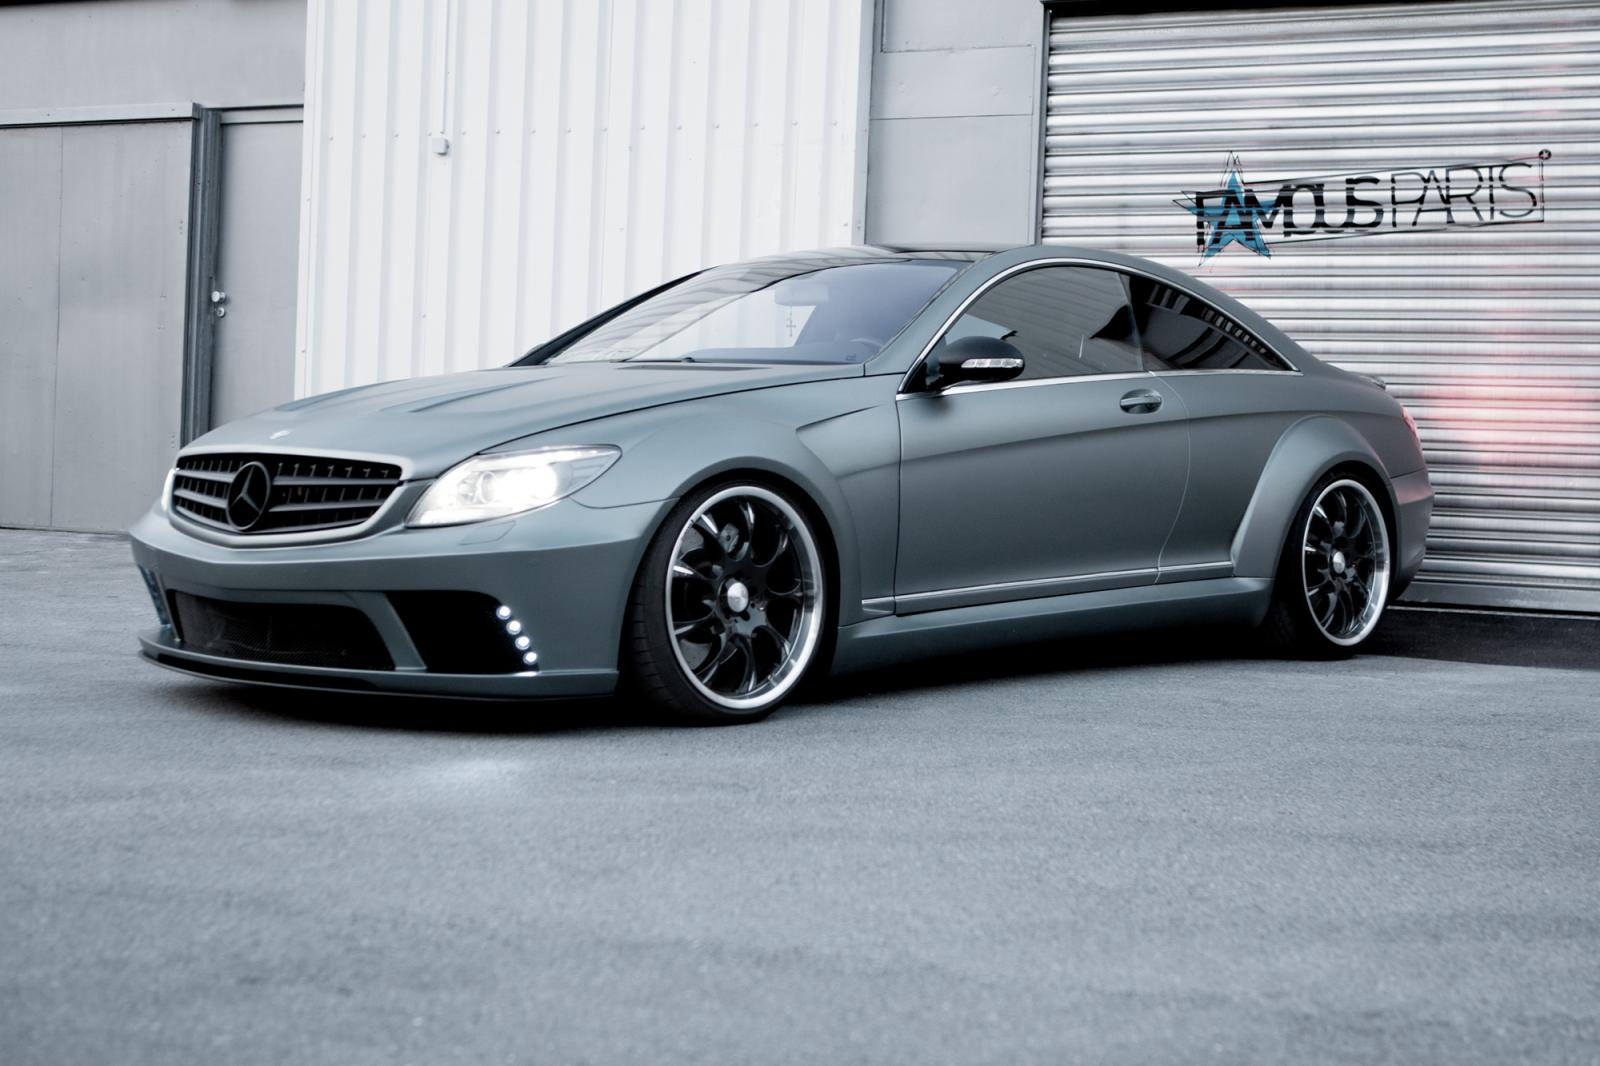 Mercedes benz cl63 amg tuned by famous parts for Auto parts for mercedes benz